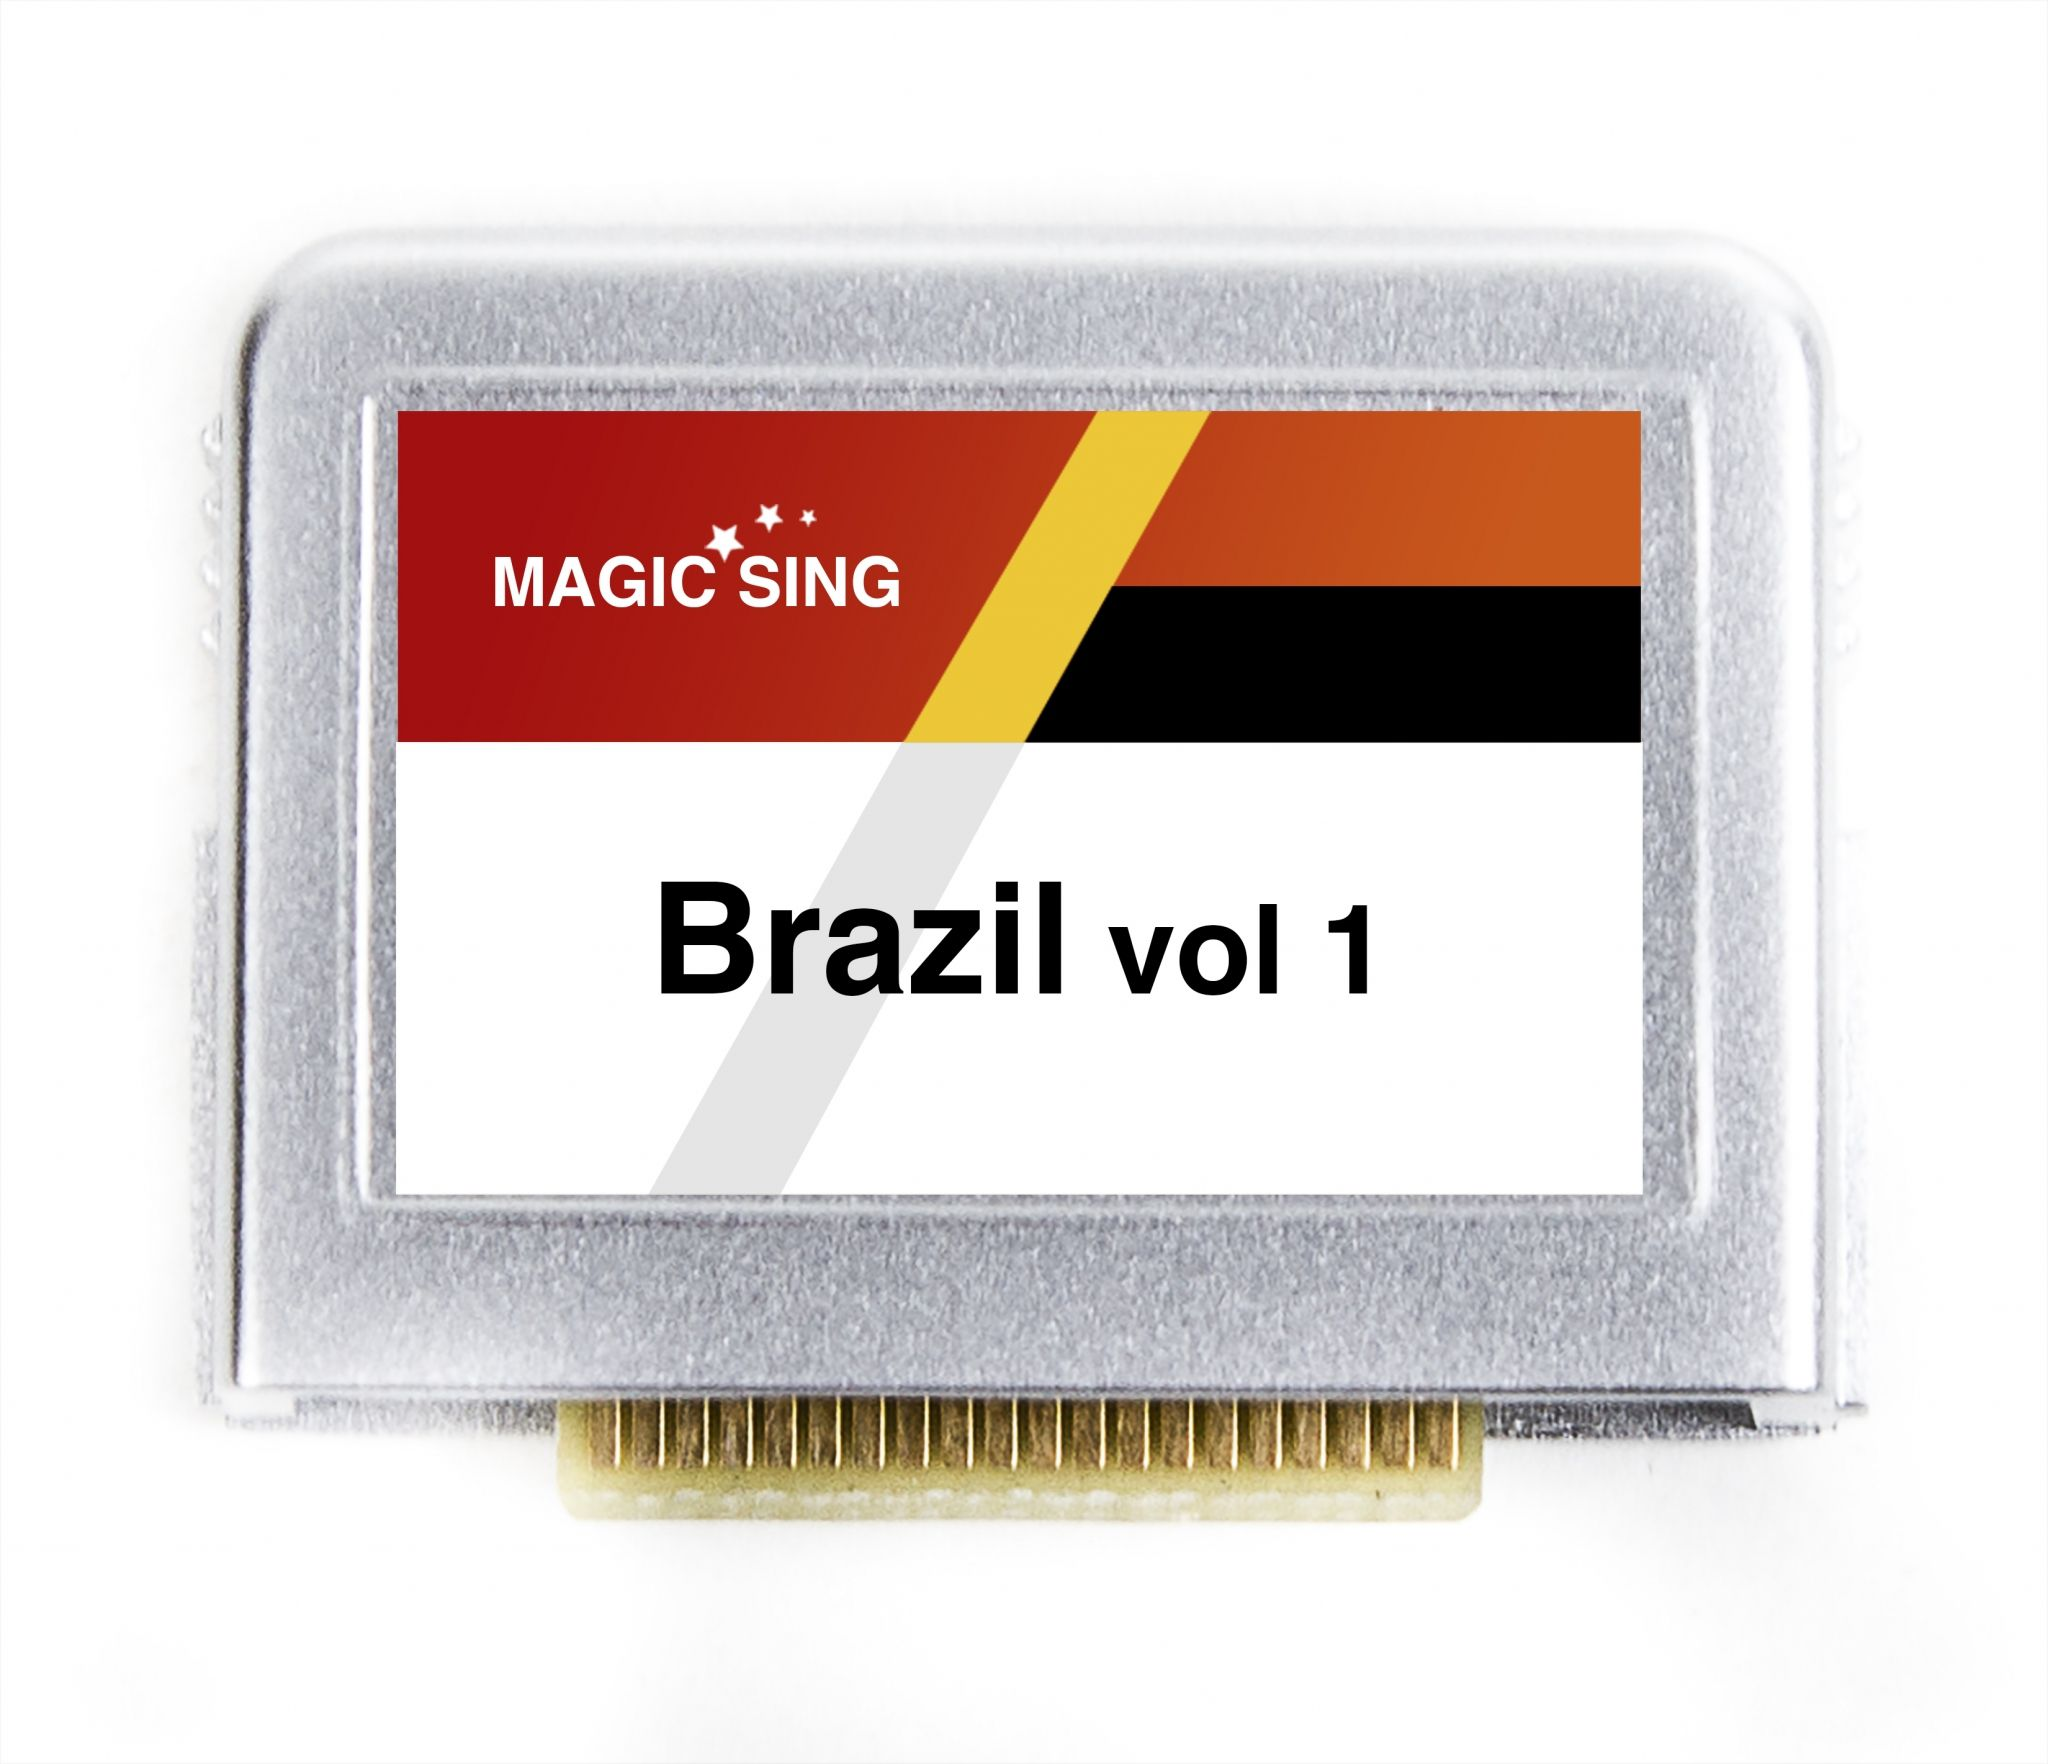 Brazil vol.1 (Brazilian)(MS vol.1) 150 songs